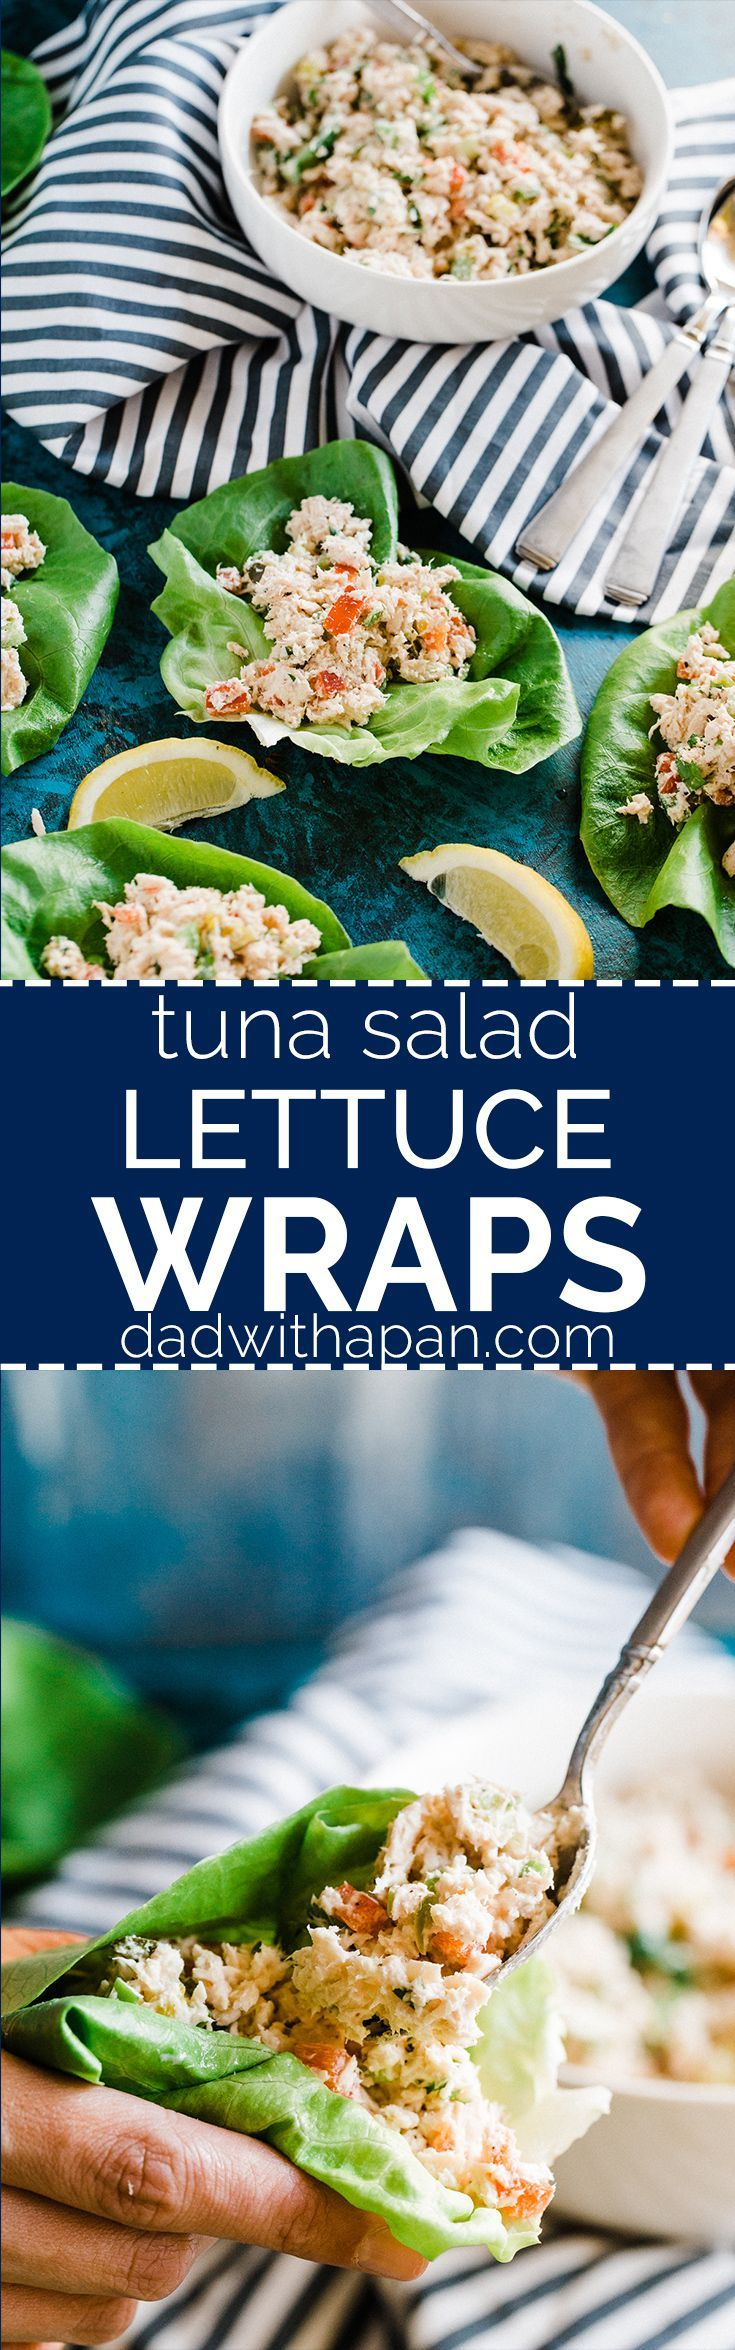 Fresh and easy to make lunch that beats the plain old tuna sandwich. These tuna salad lettuce wraps aren't drowning in mayo that the whole family will love! | Dad with a Pan